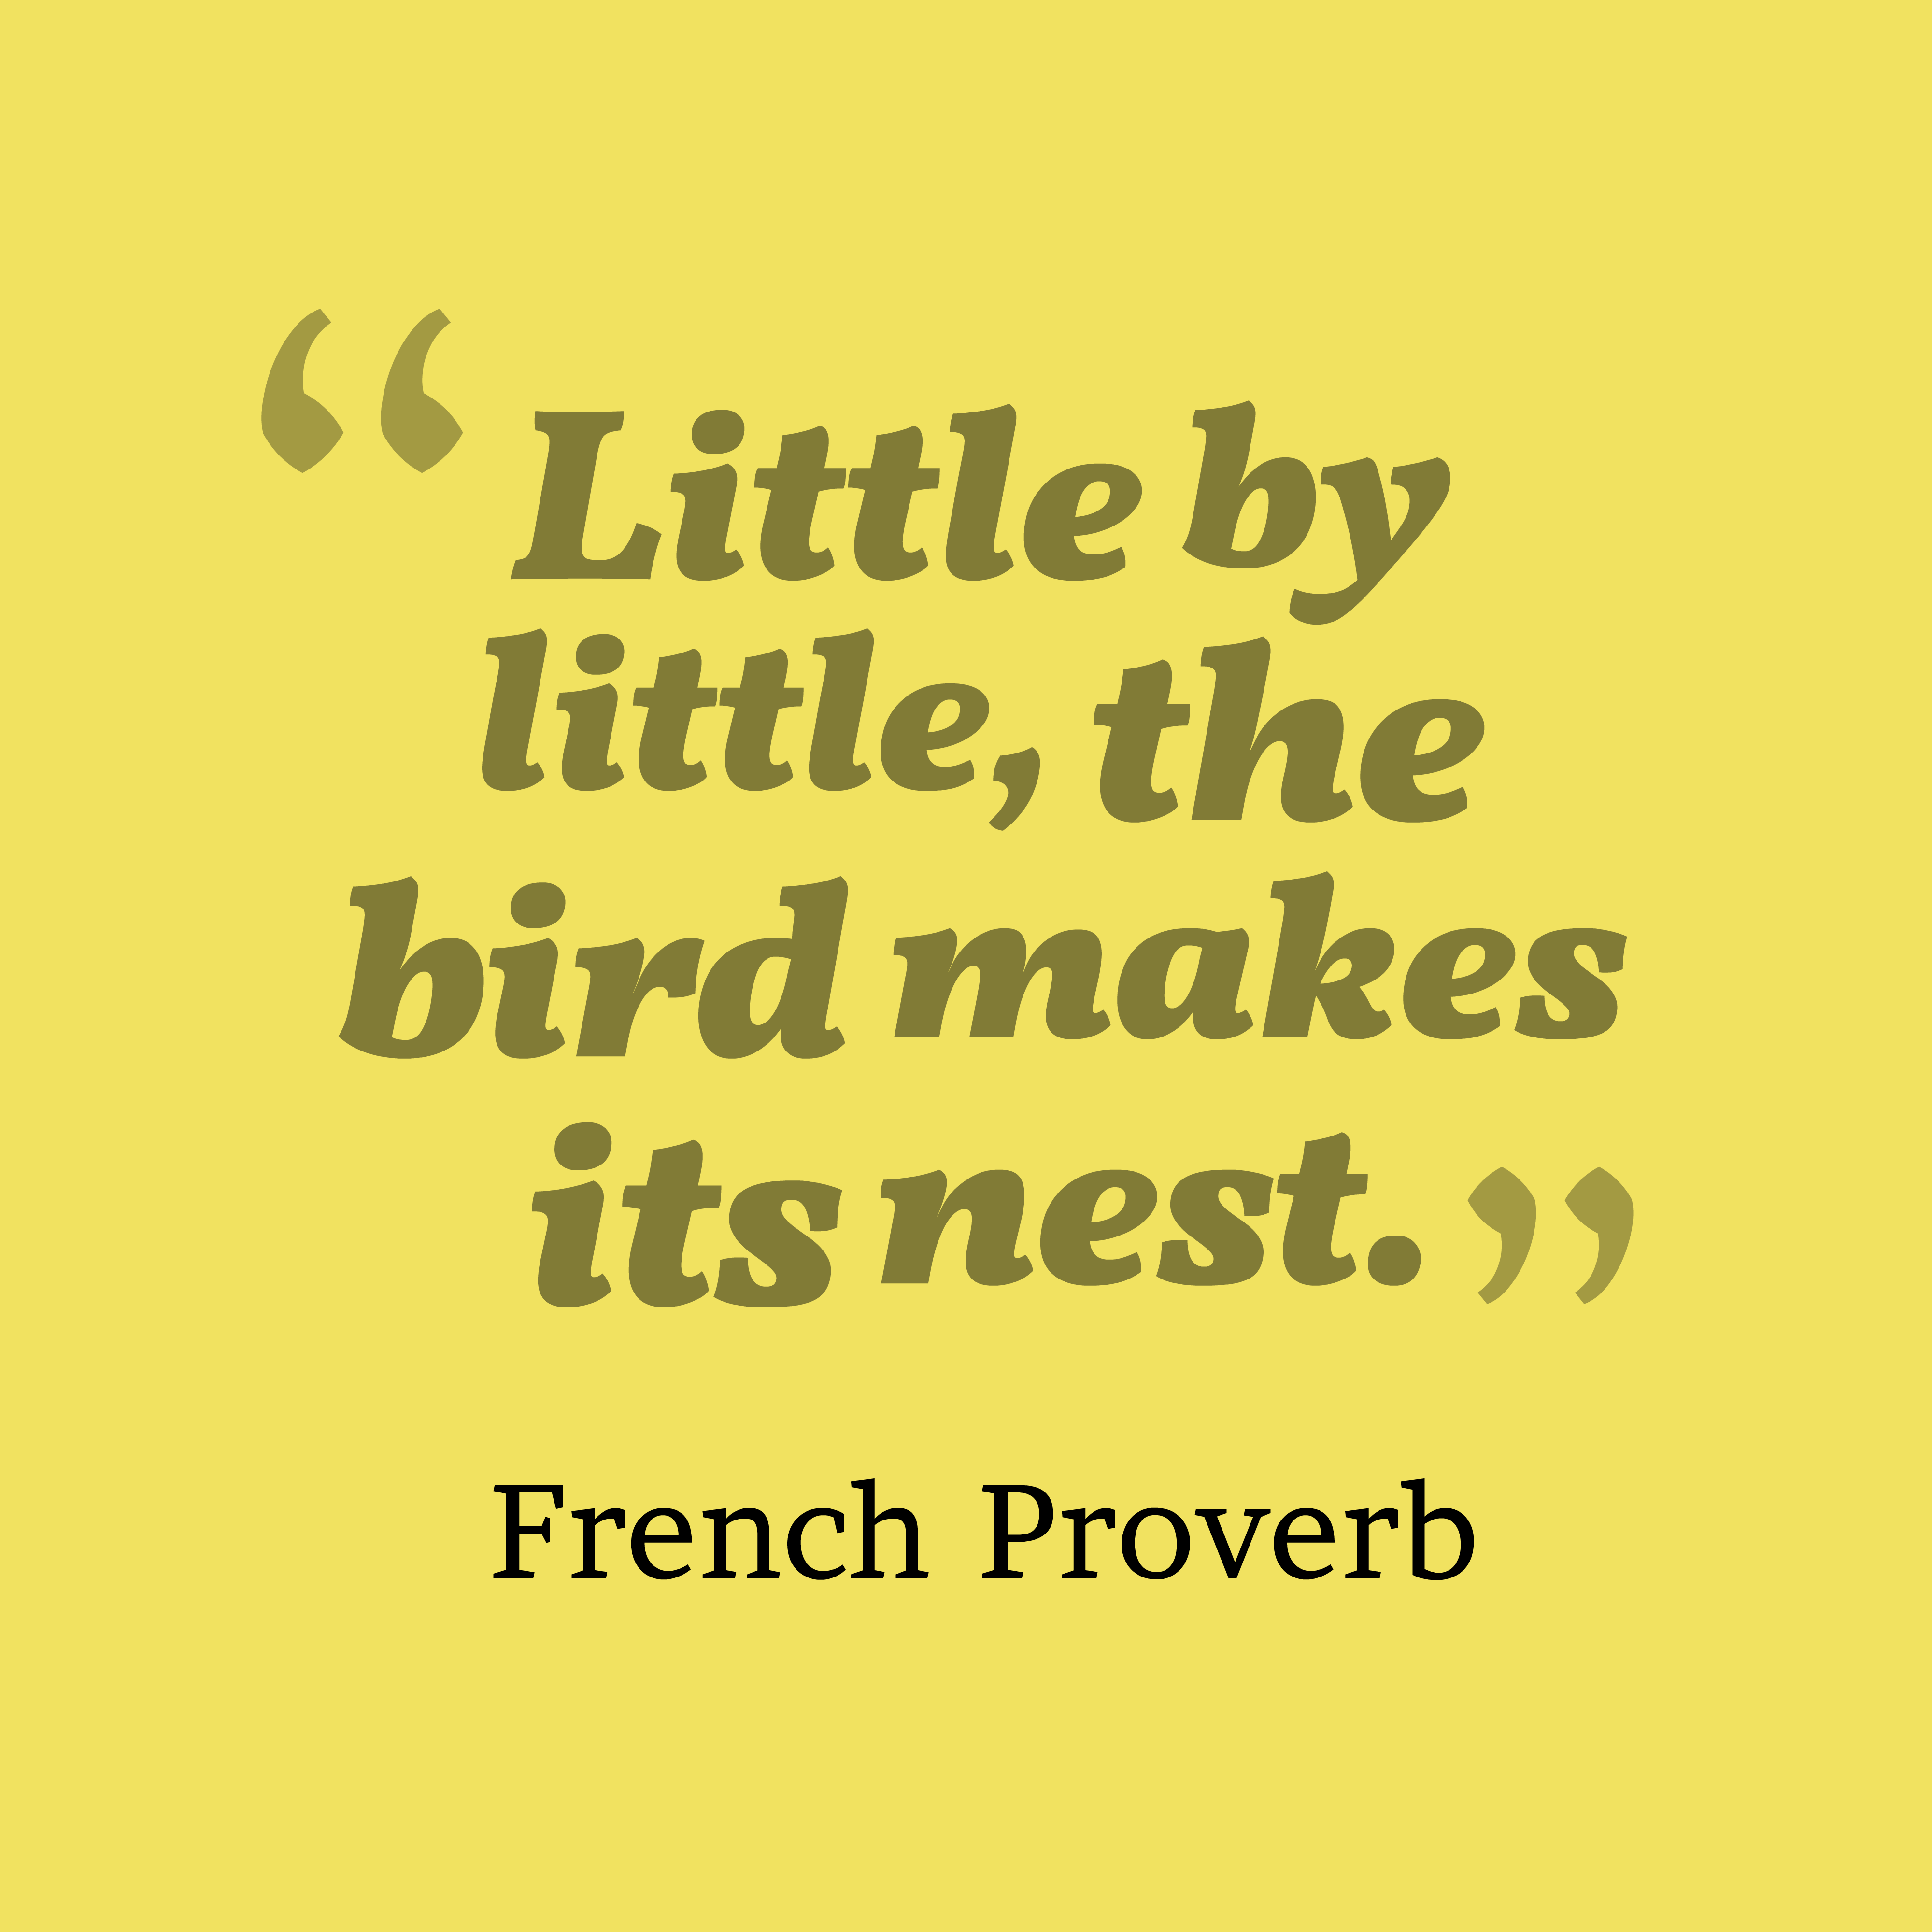 Quotes image of Little by little, the bird makes its nest.